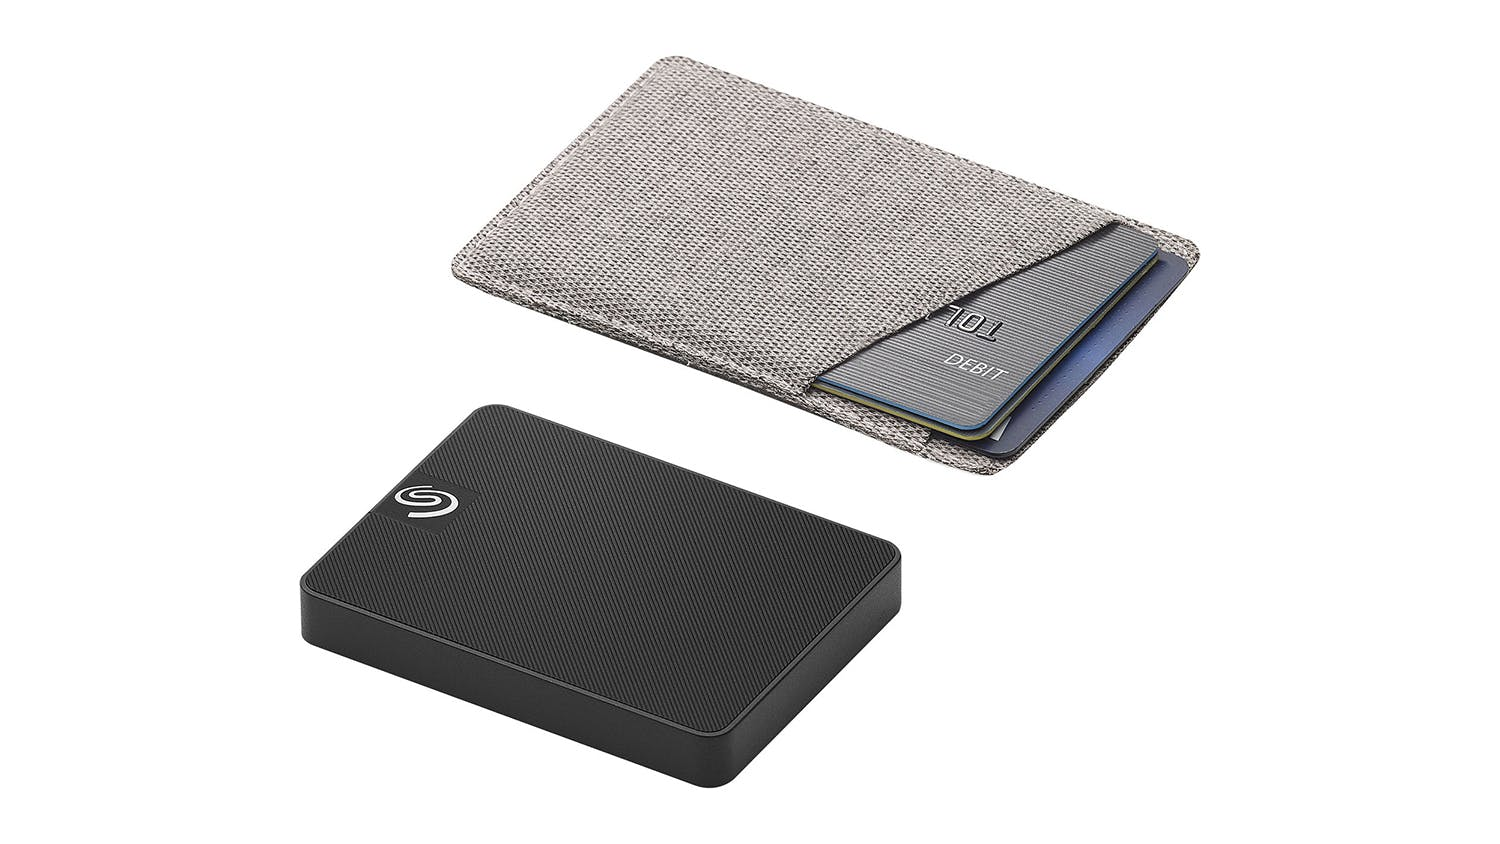 Seagate Expansion Portable SSD Black - 1TB